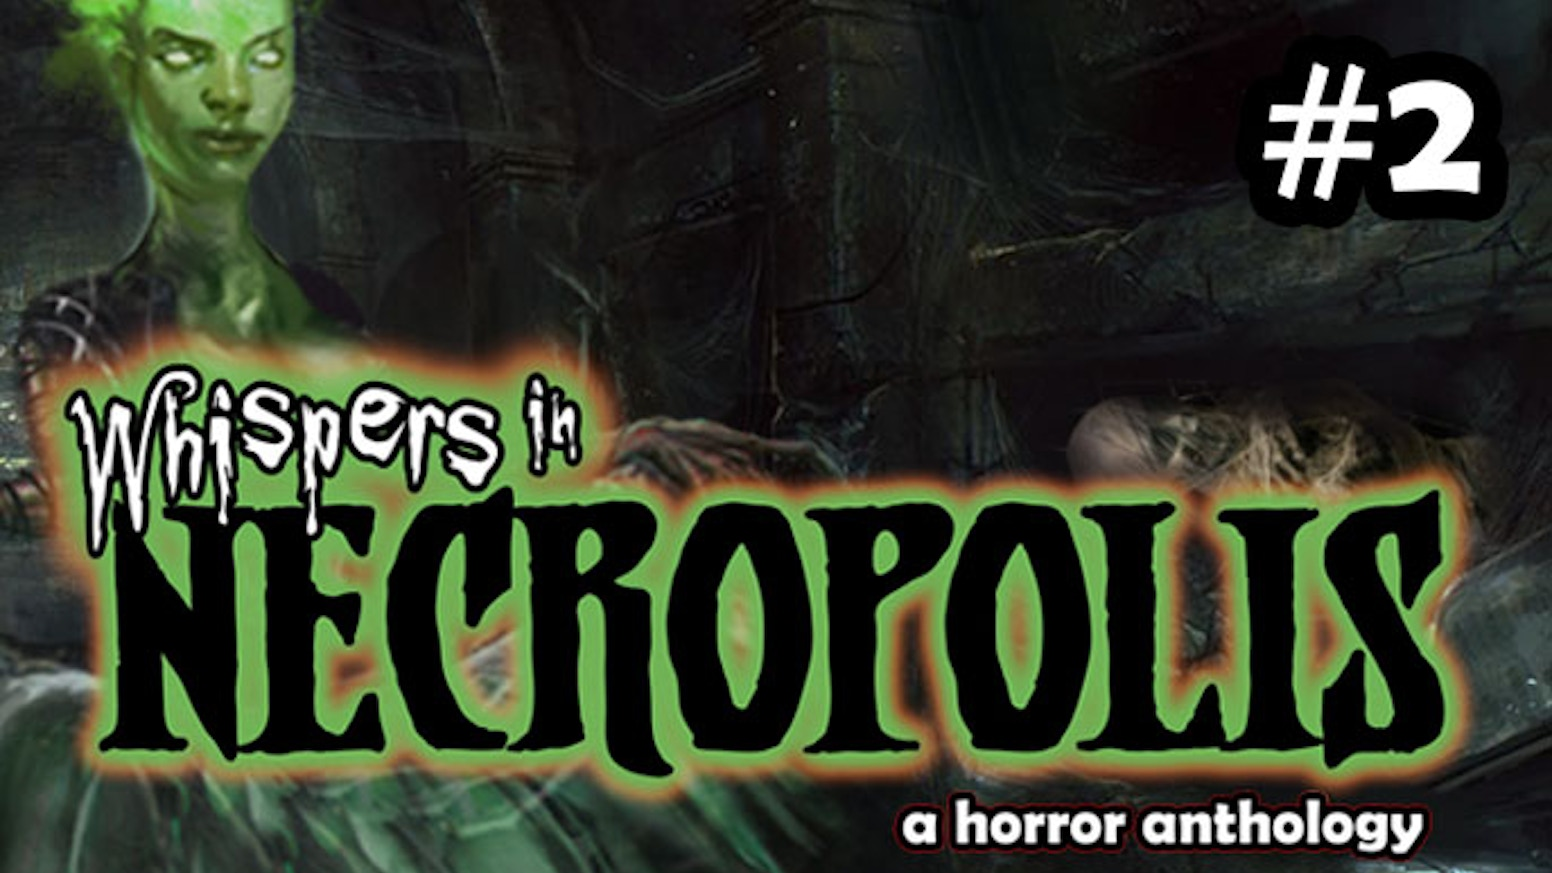 The second installment of the horror anthology by Codex Entertainment,llc